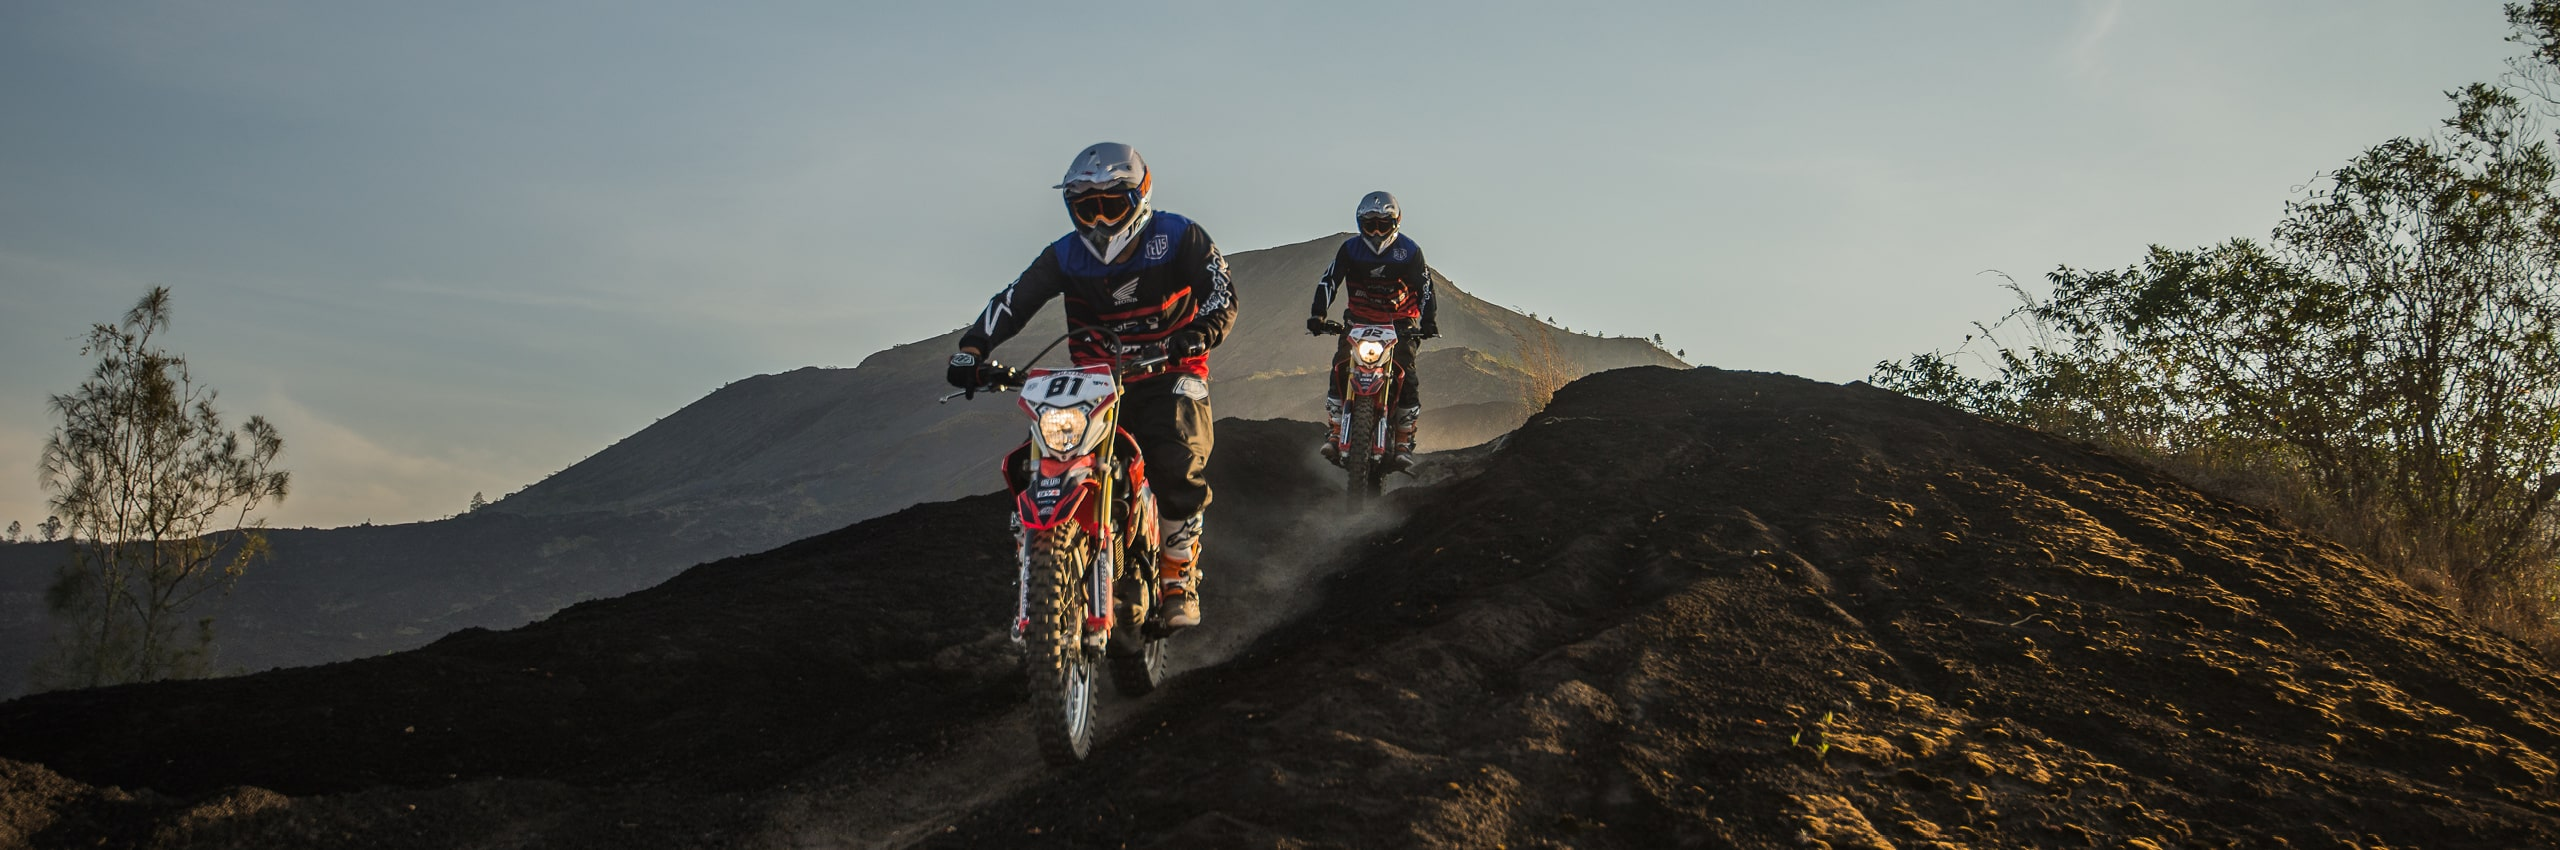 Bali_Dirt_Bikes_Kintamani_Black_Lava_Slider12